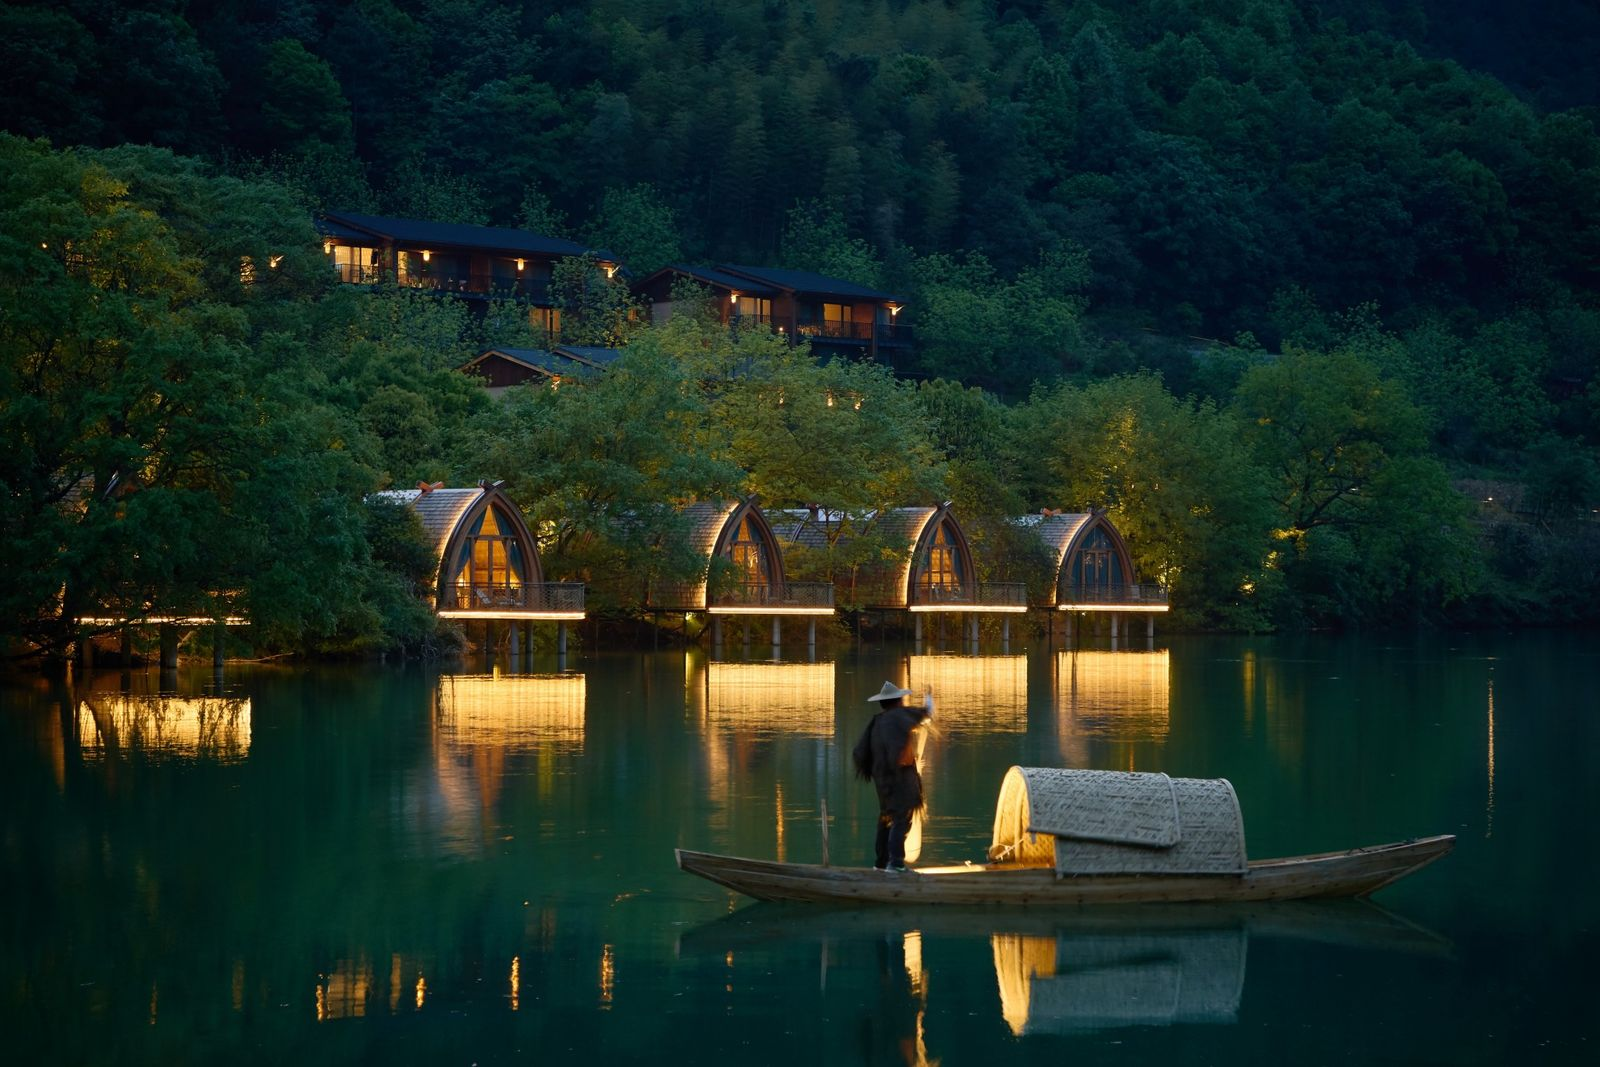 Boat Rooms on the Fuchun River by Design Institute of Landscape and Architecture China